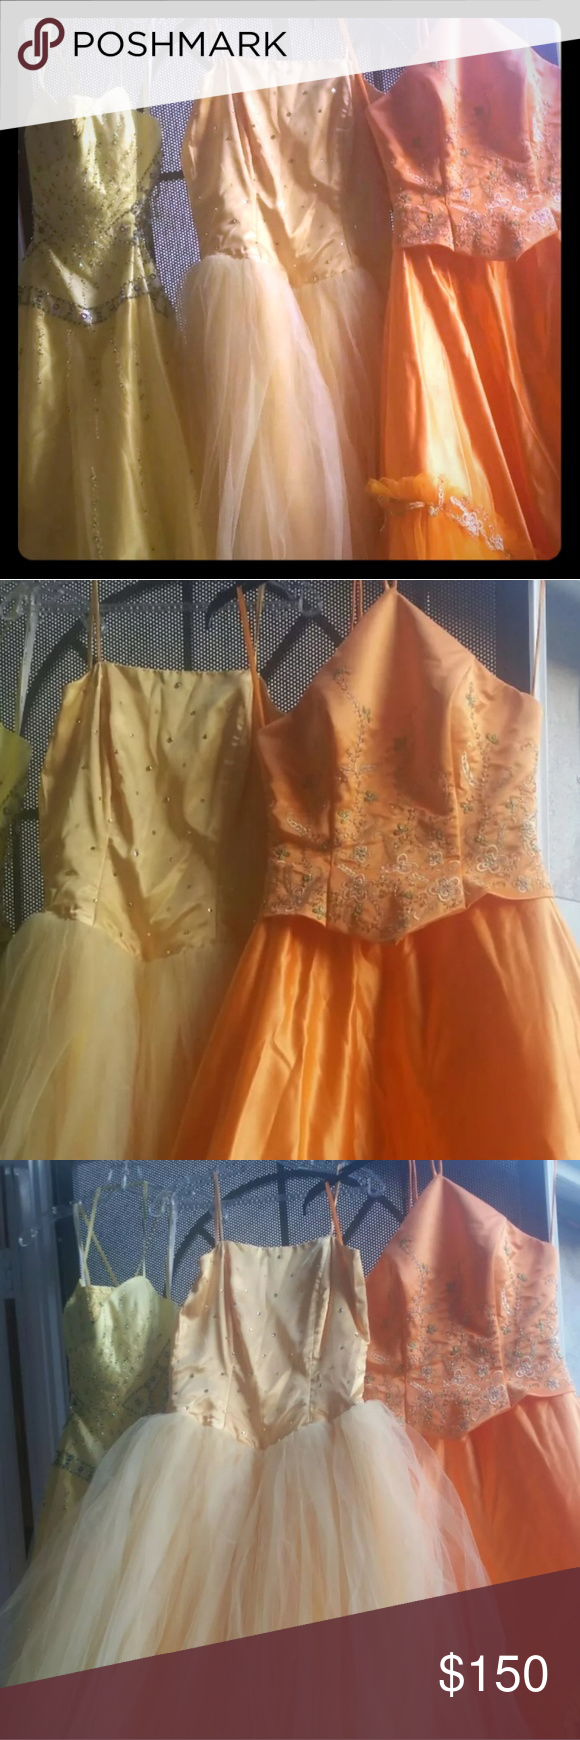 EVENING DRESSES on SALE! SIZES 6, 8,10 3 Beautiful LONG GOWNS LONG GOWNS for any occasion you will find it suitable for. 1st Yellow dress from the Left Side paid $475 ..asking $150..       Super beautiful with beads.the sides and  the back are attached with beaded   straps. Will fit size 8...the chest was adjusted for more coverage.  2nd Yellow Dress was costume made...Size 8-10 paid $370 asking $70        There are stones on The top, some of them fell off 3rd Orange dress is Size 6 halter…